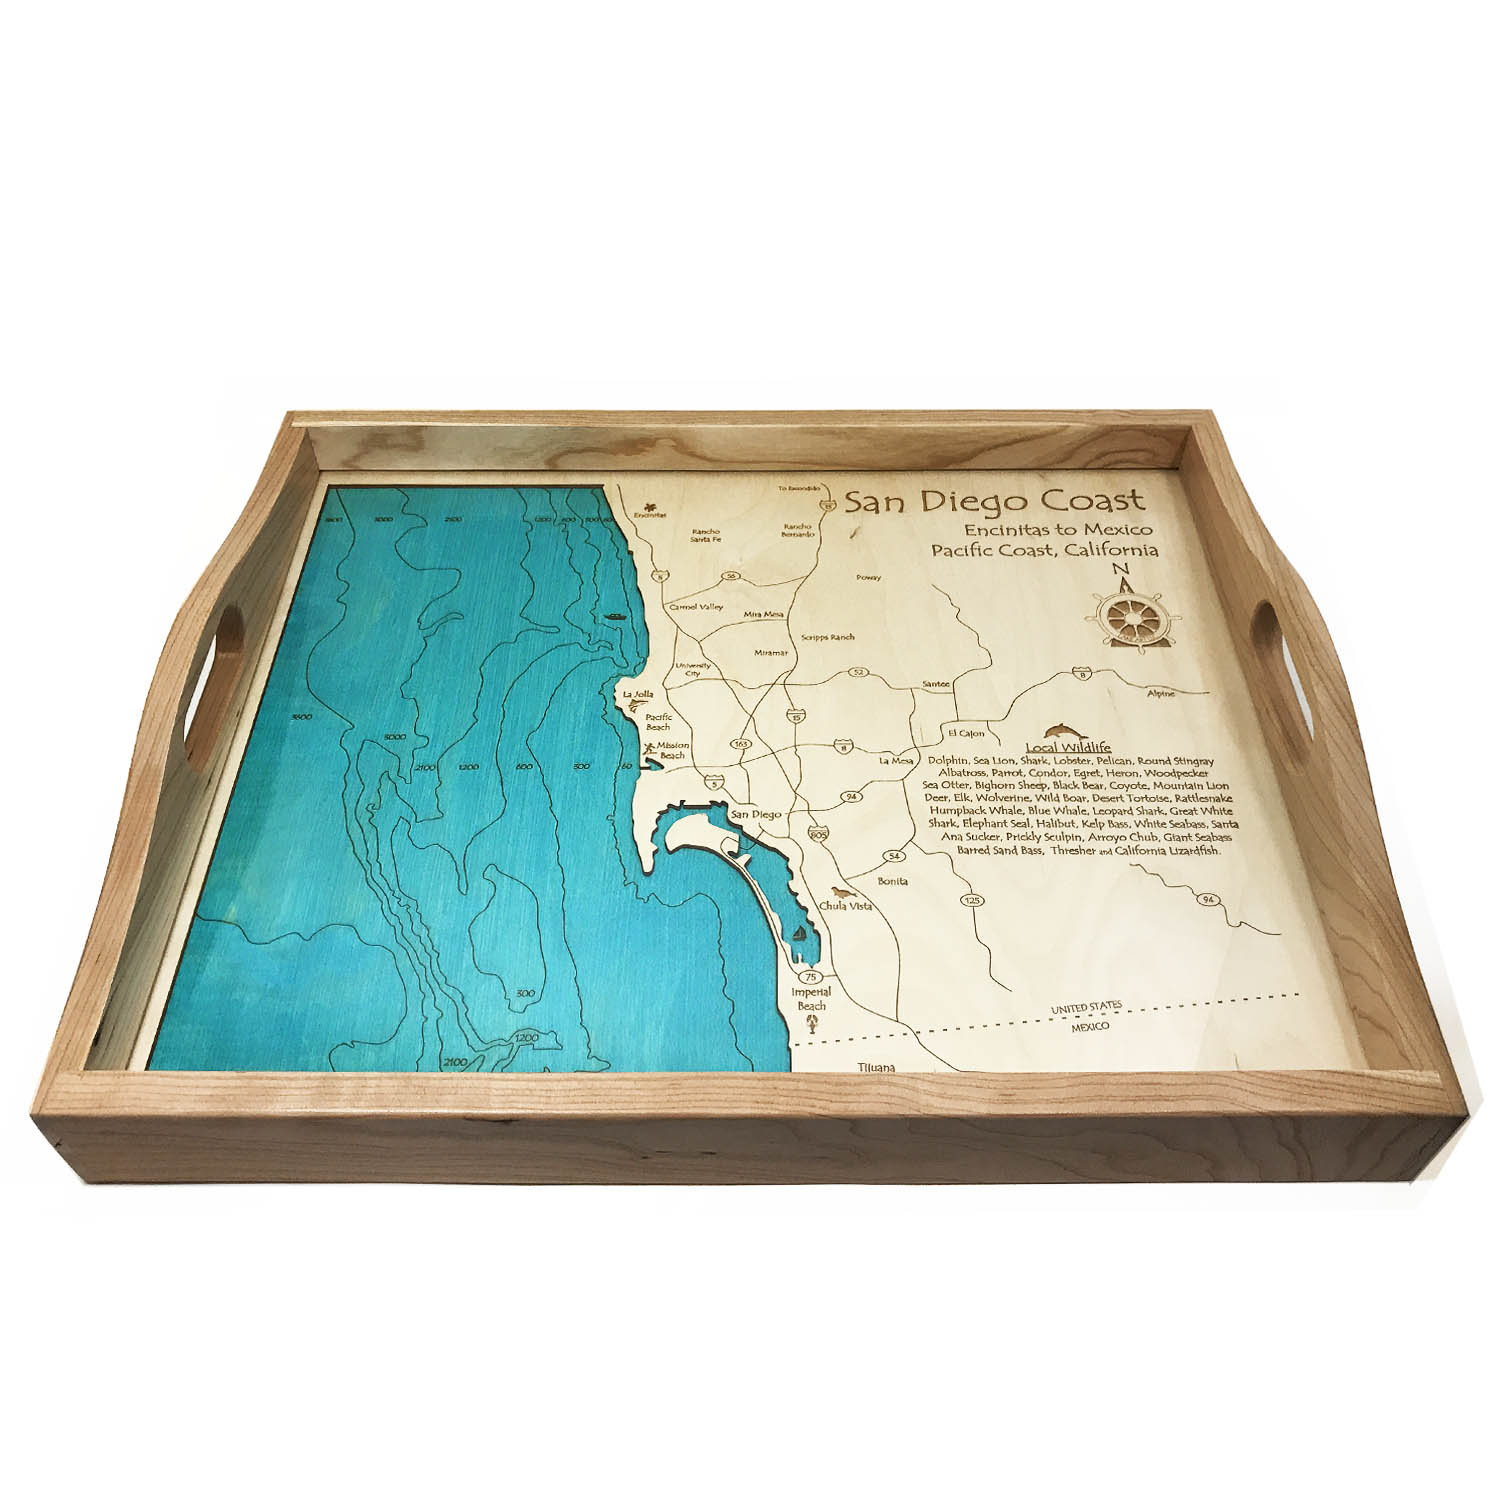 San Diego Coast Wood Map Serving Tray